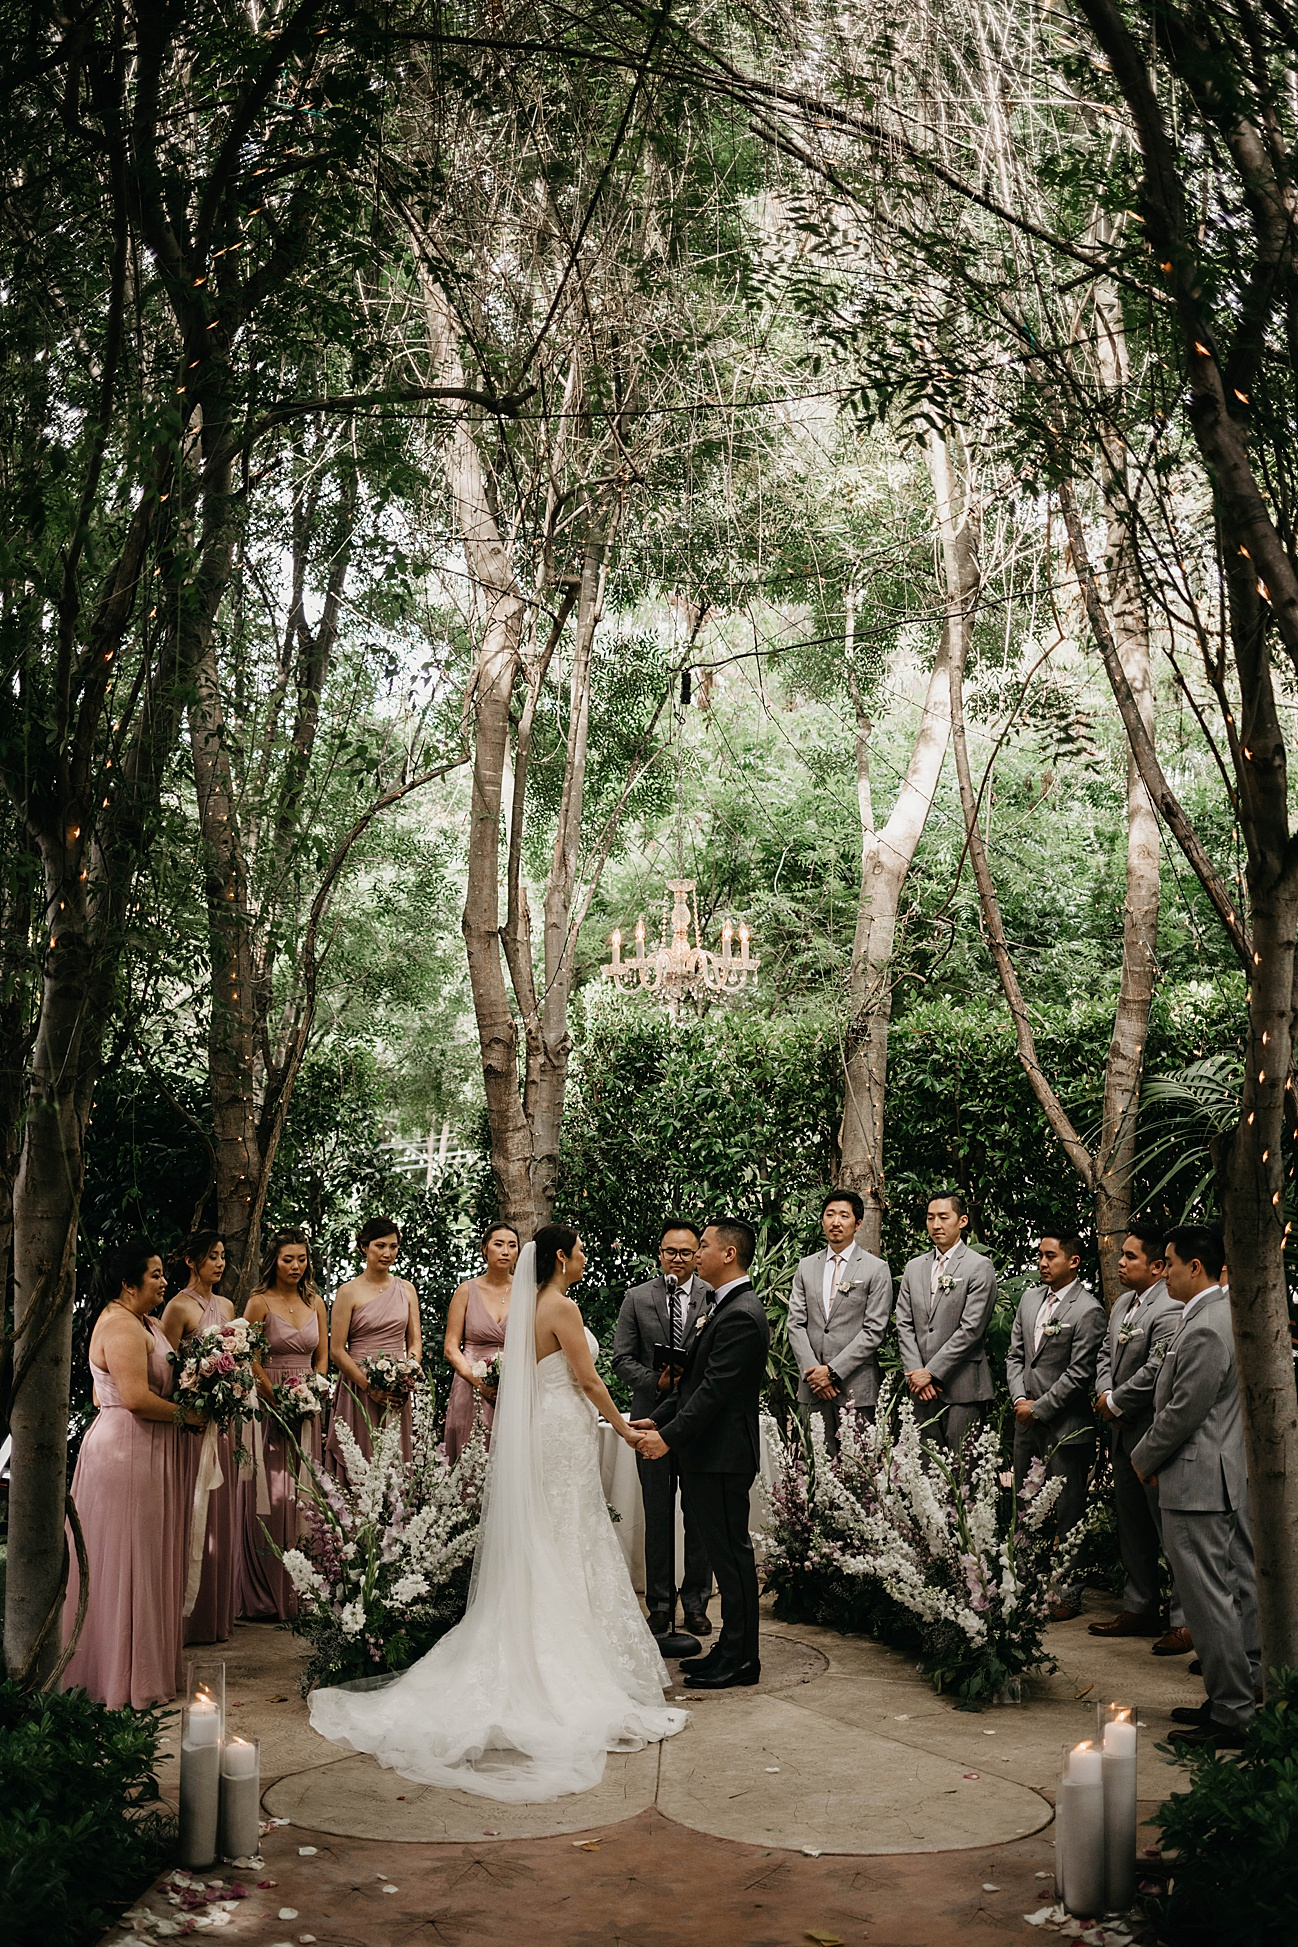 hartley-botanica-wedding31.jpg